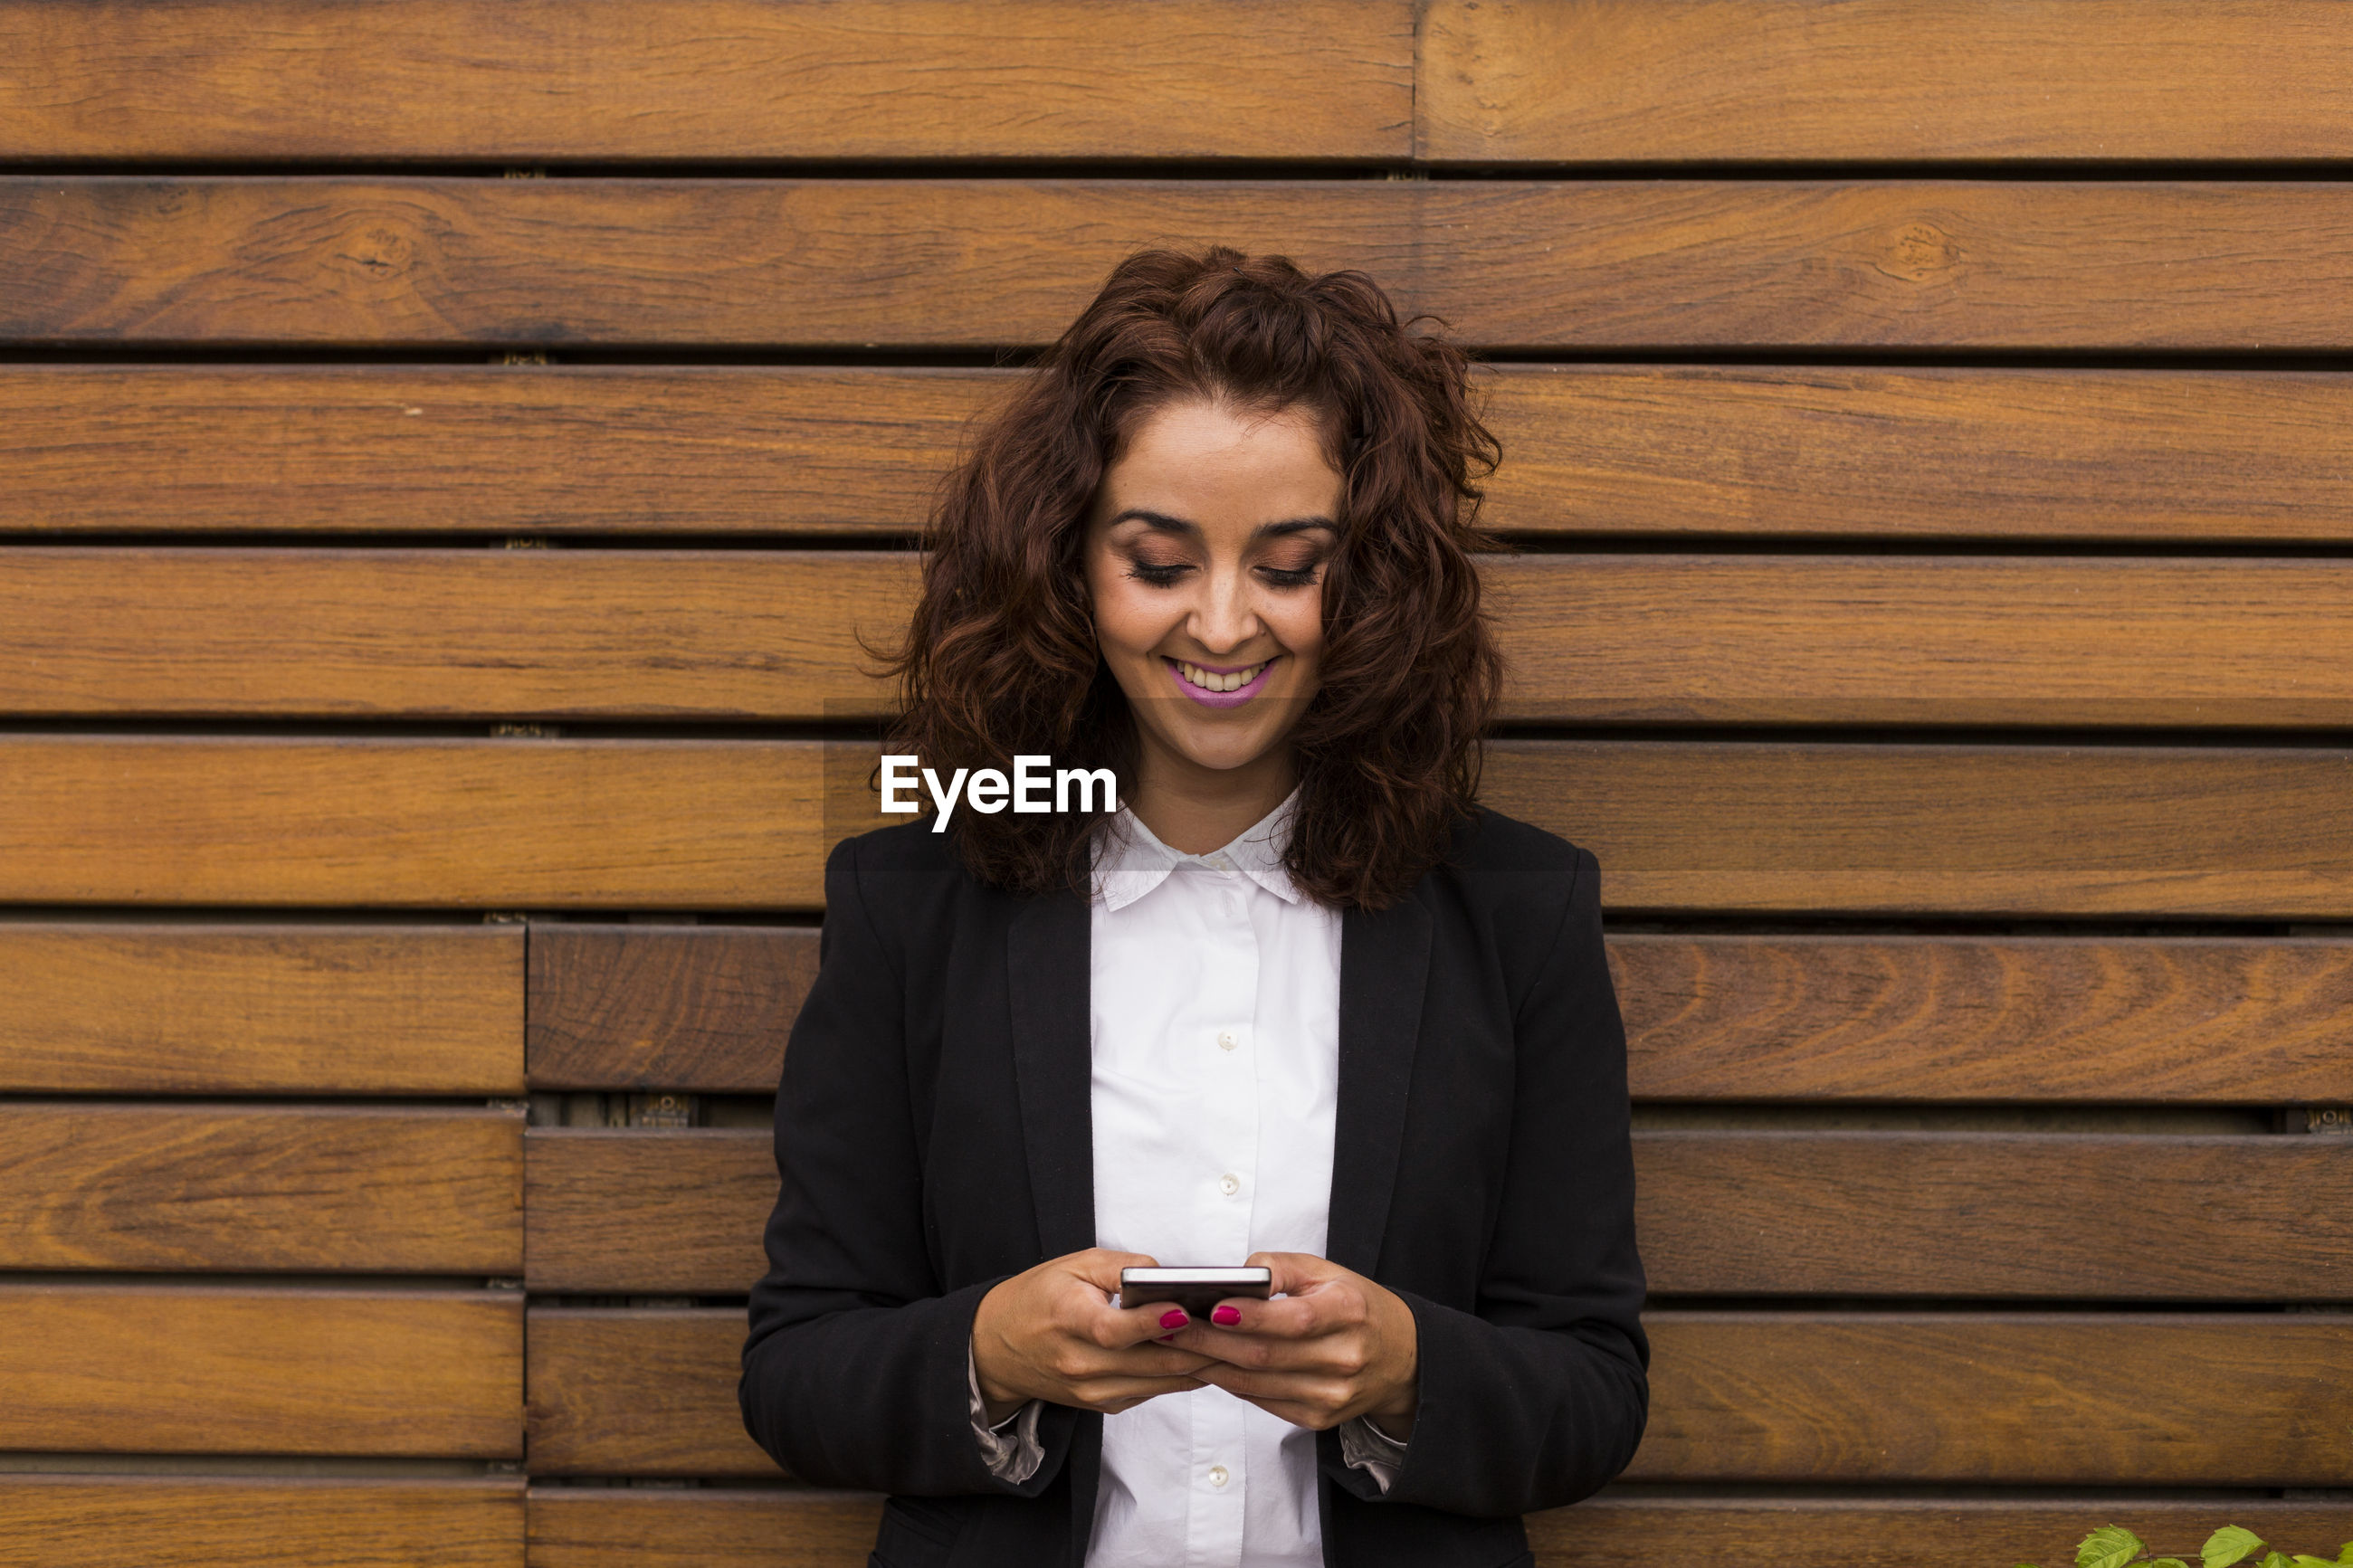 Businesswoman using mobile phone against wooden wall